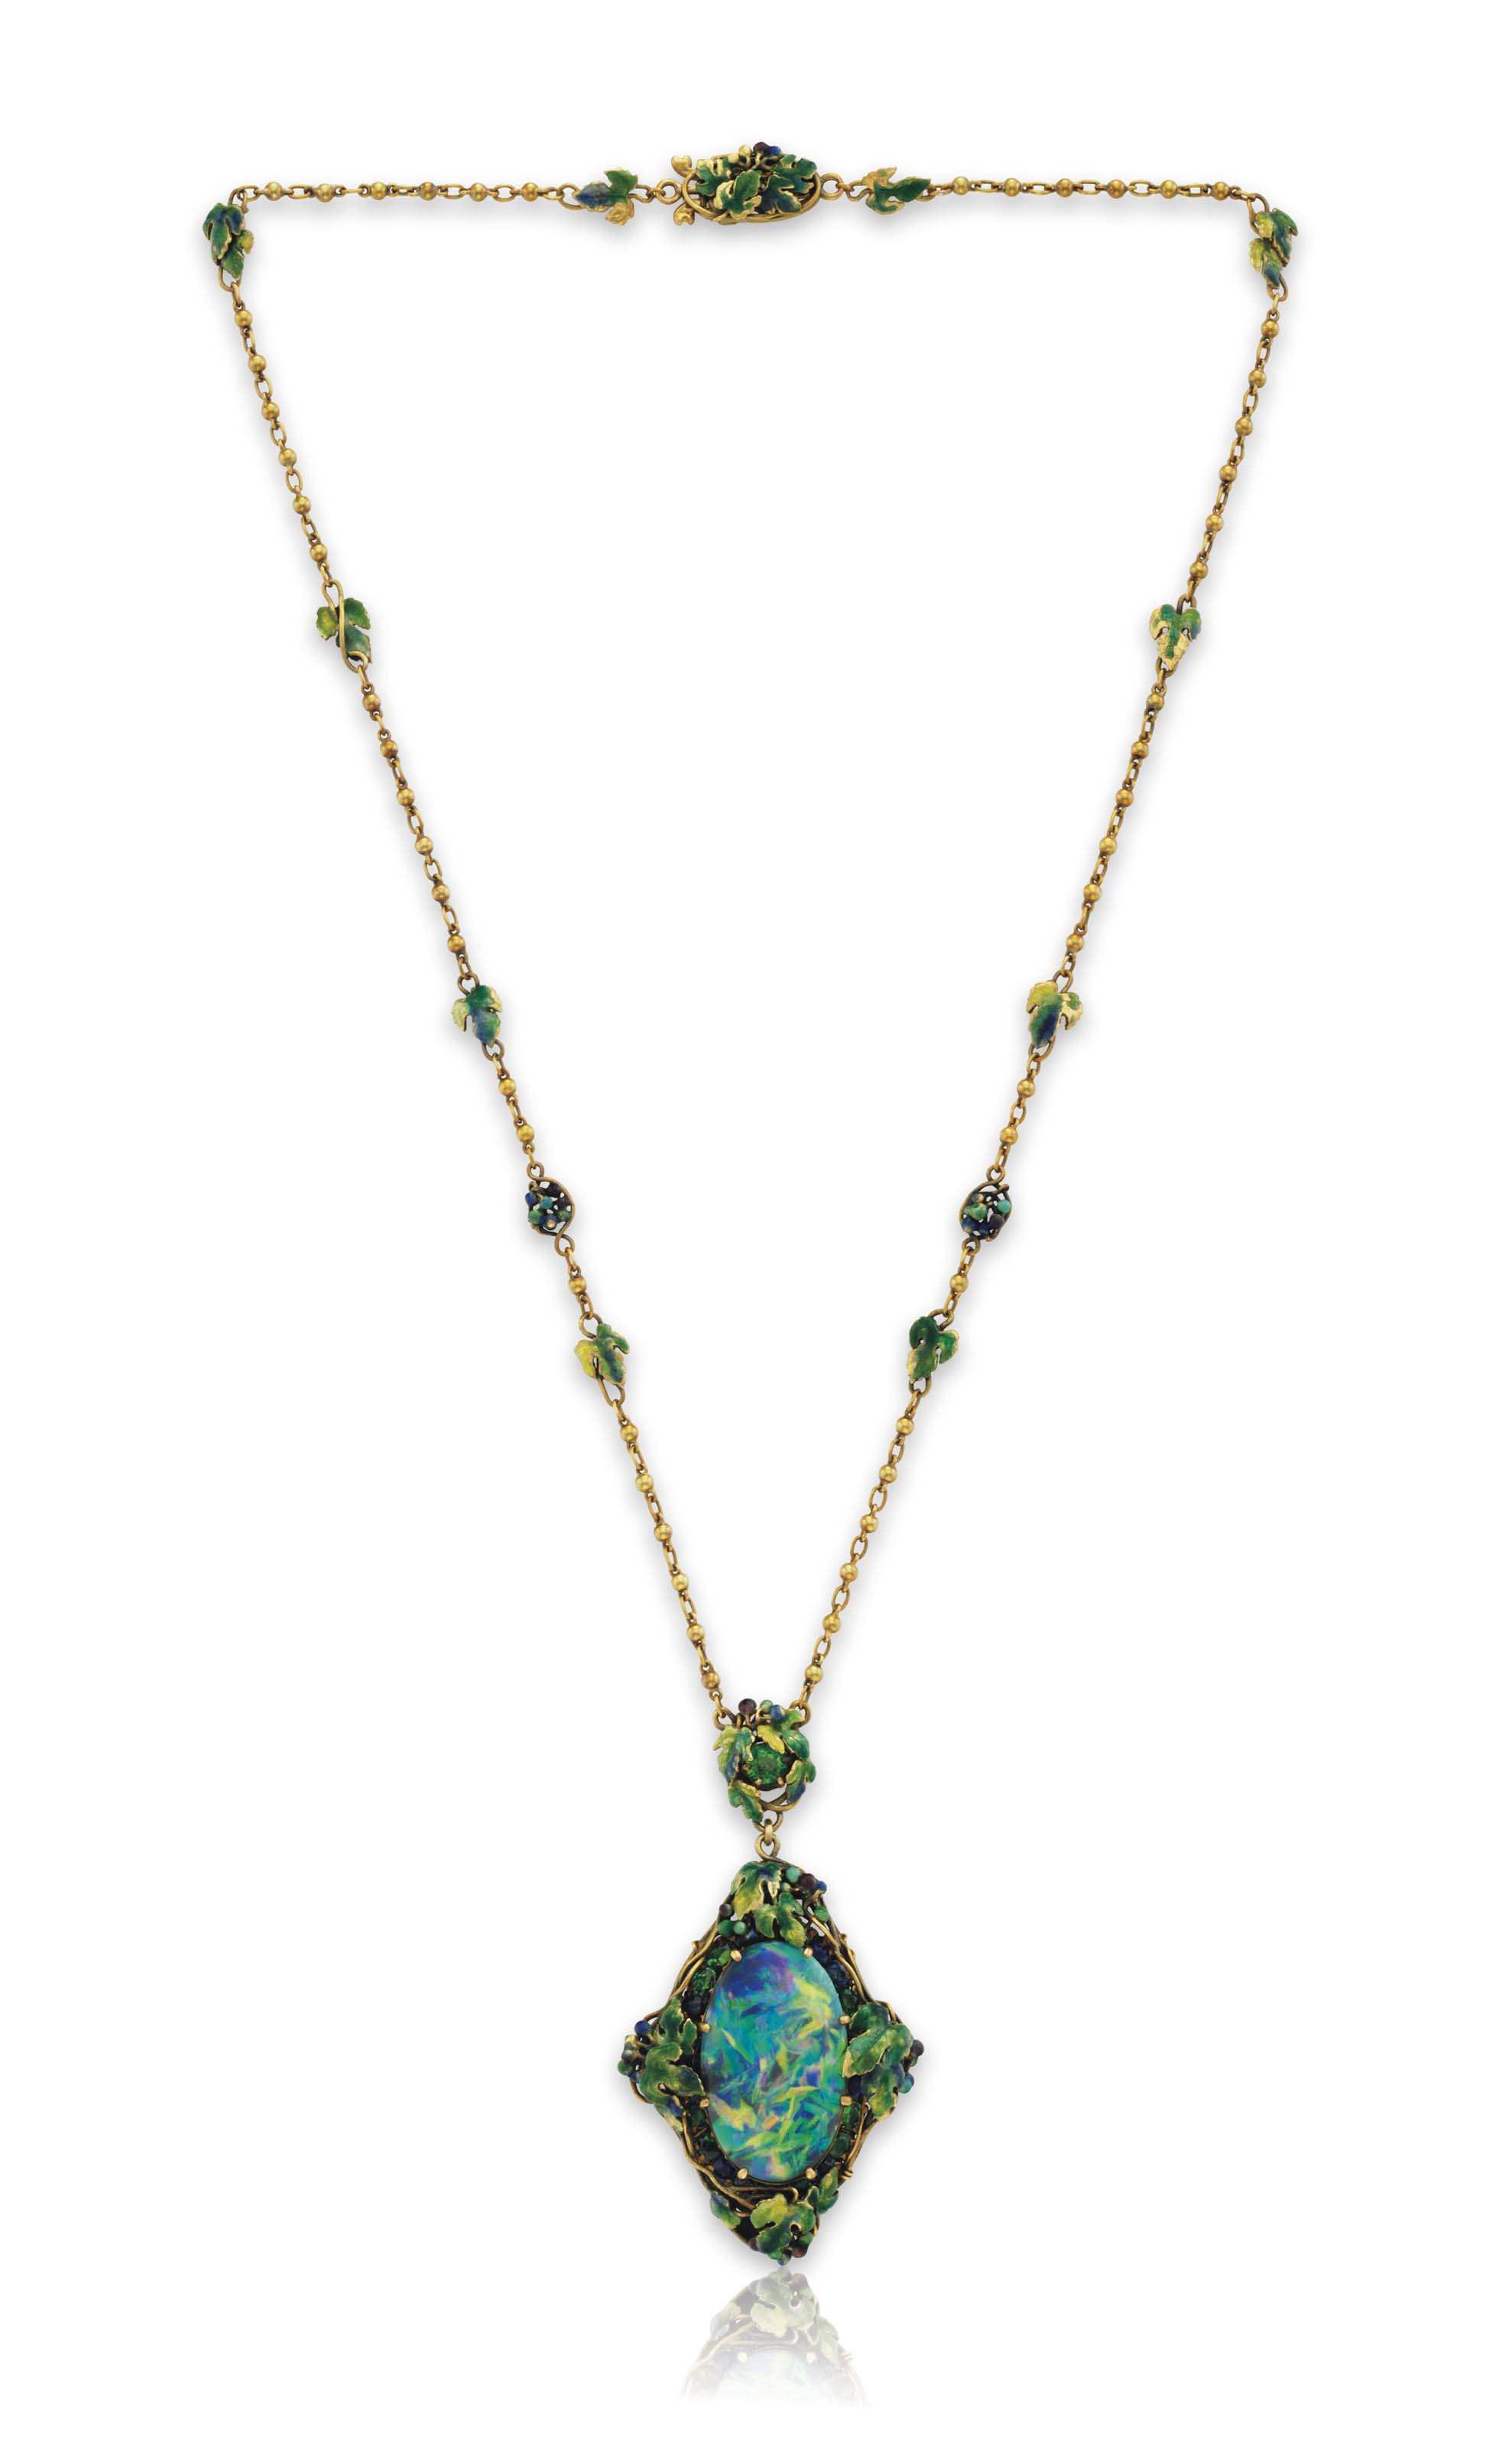 A BLACK OPAL AND MULTI-GEM PENDANT NECKLACE, BY LOUIS COMFORT TIFFANY, TIFFANY & CO.